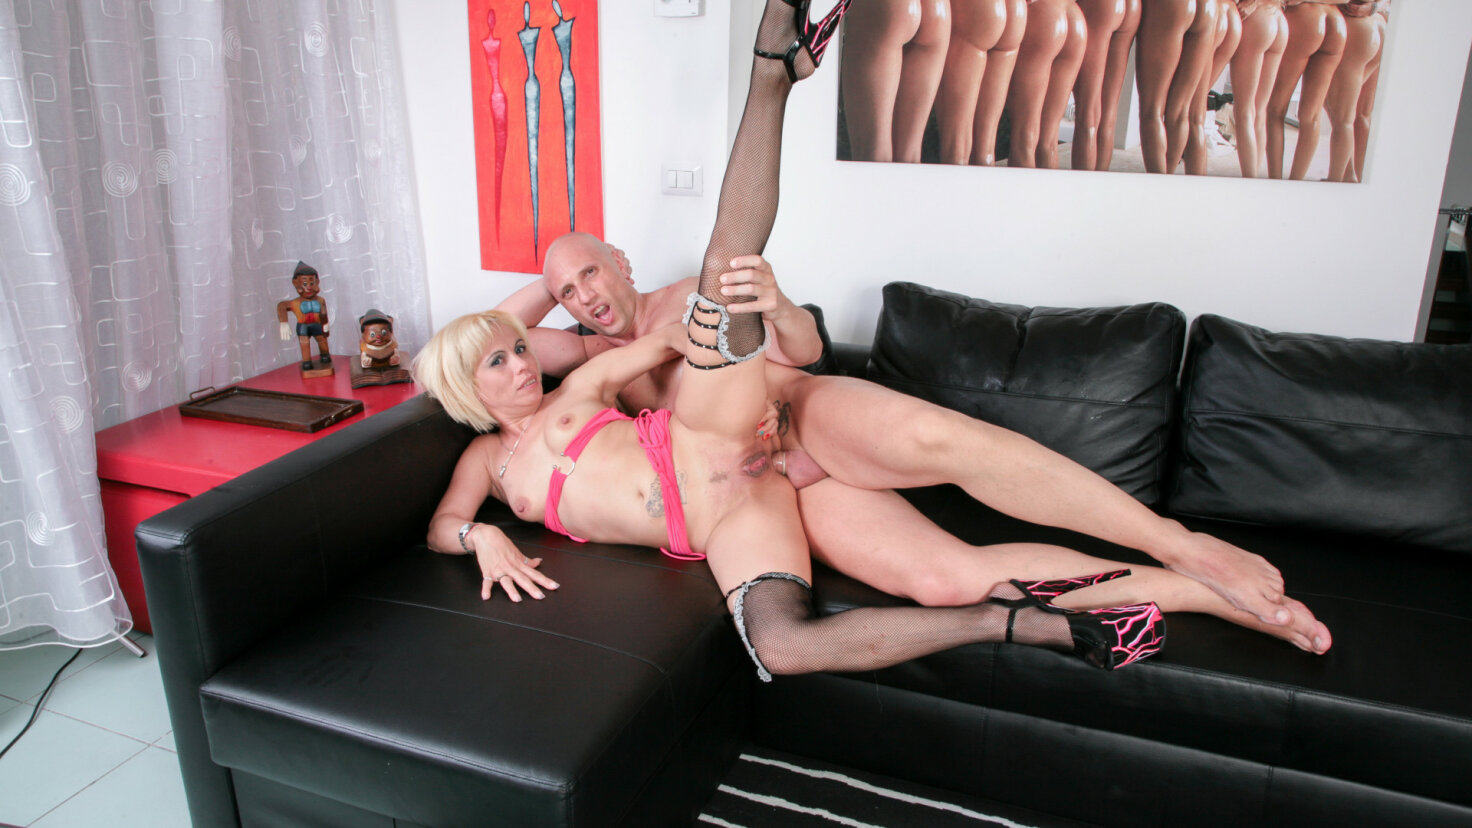 Slutty blonde Latina craves anal and cumshot from Italian swinger